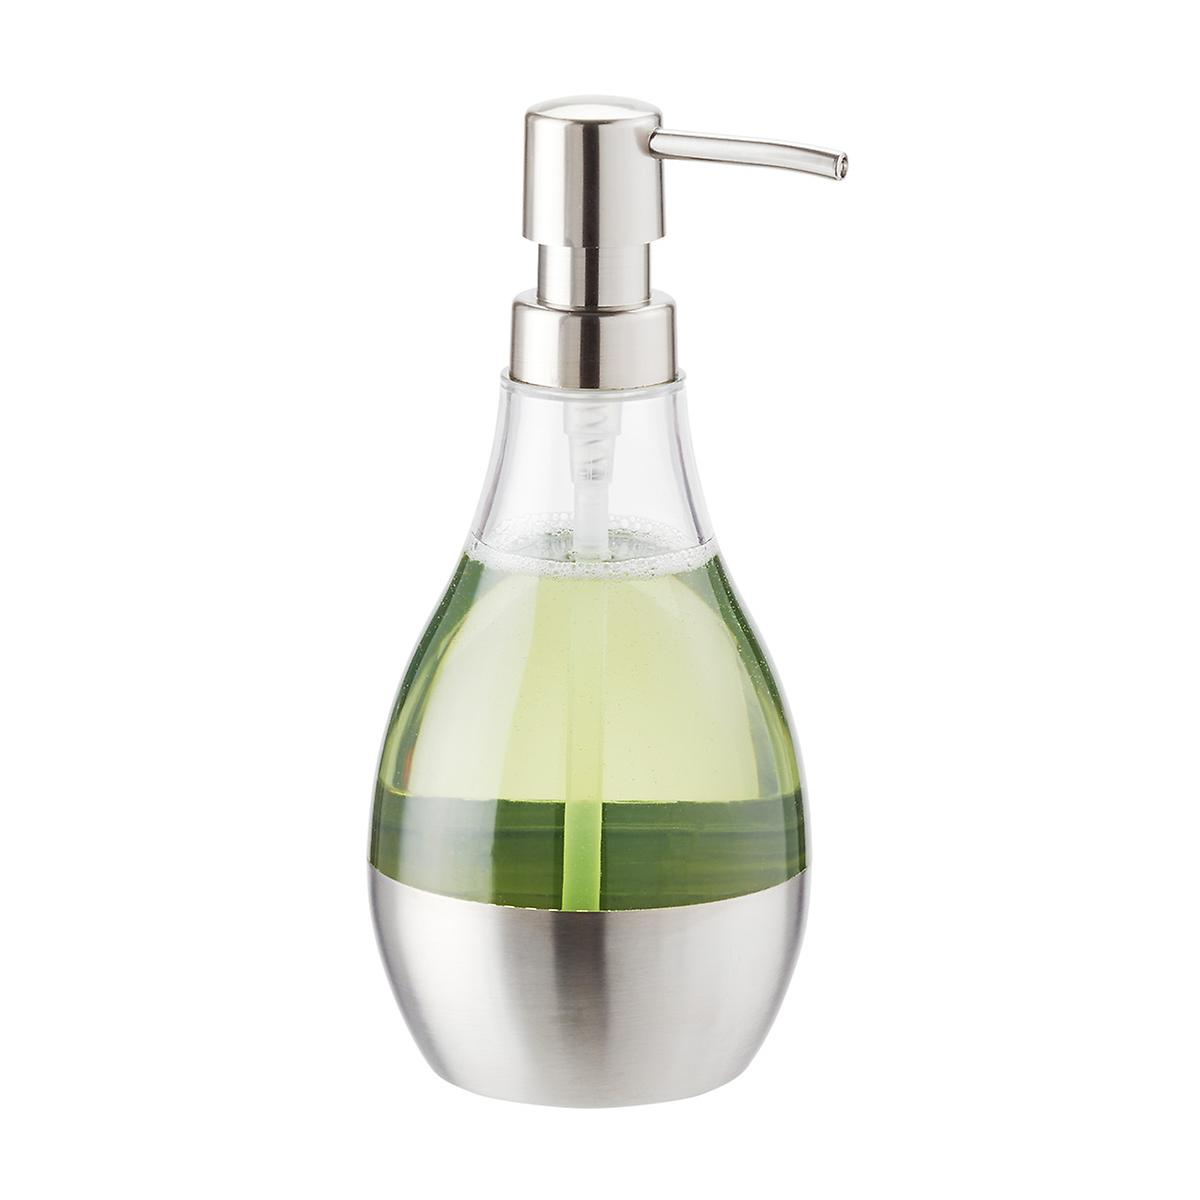 Soap Dispenser Pump